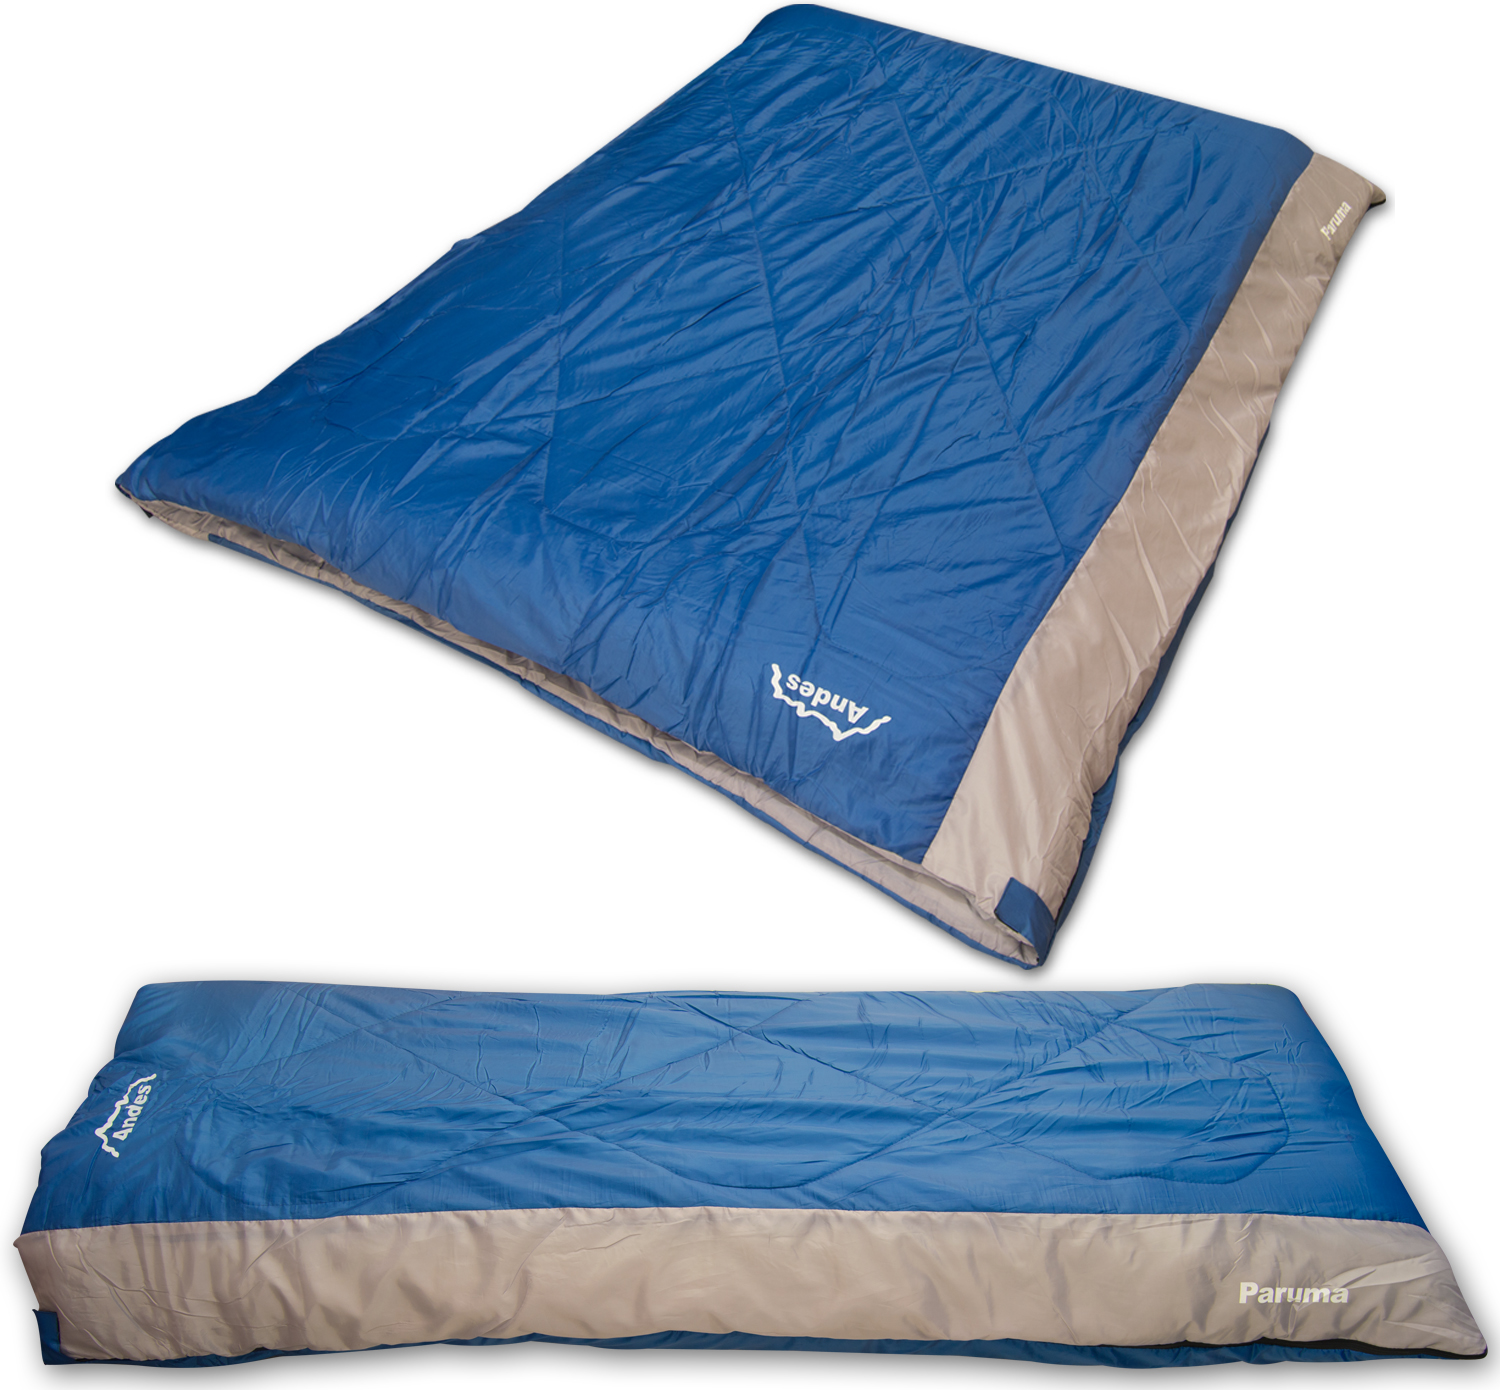 Andes Paruma Convertible Sleeping Bag